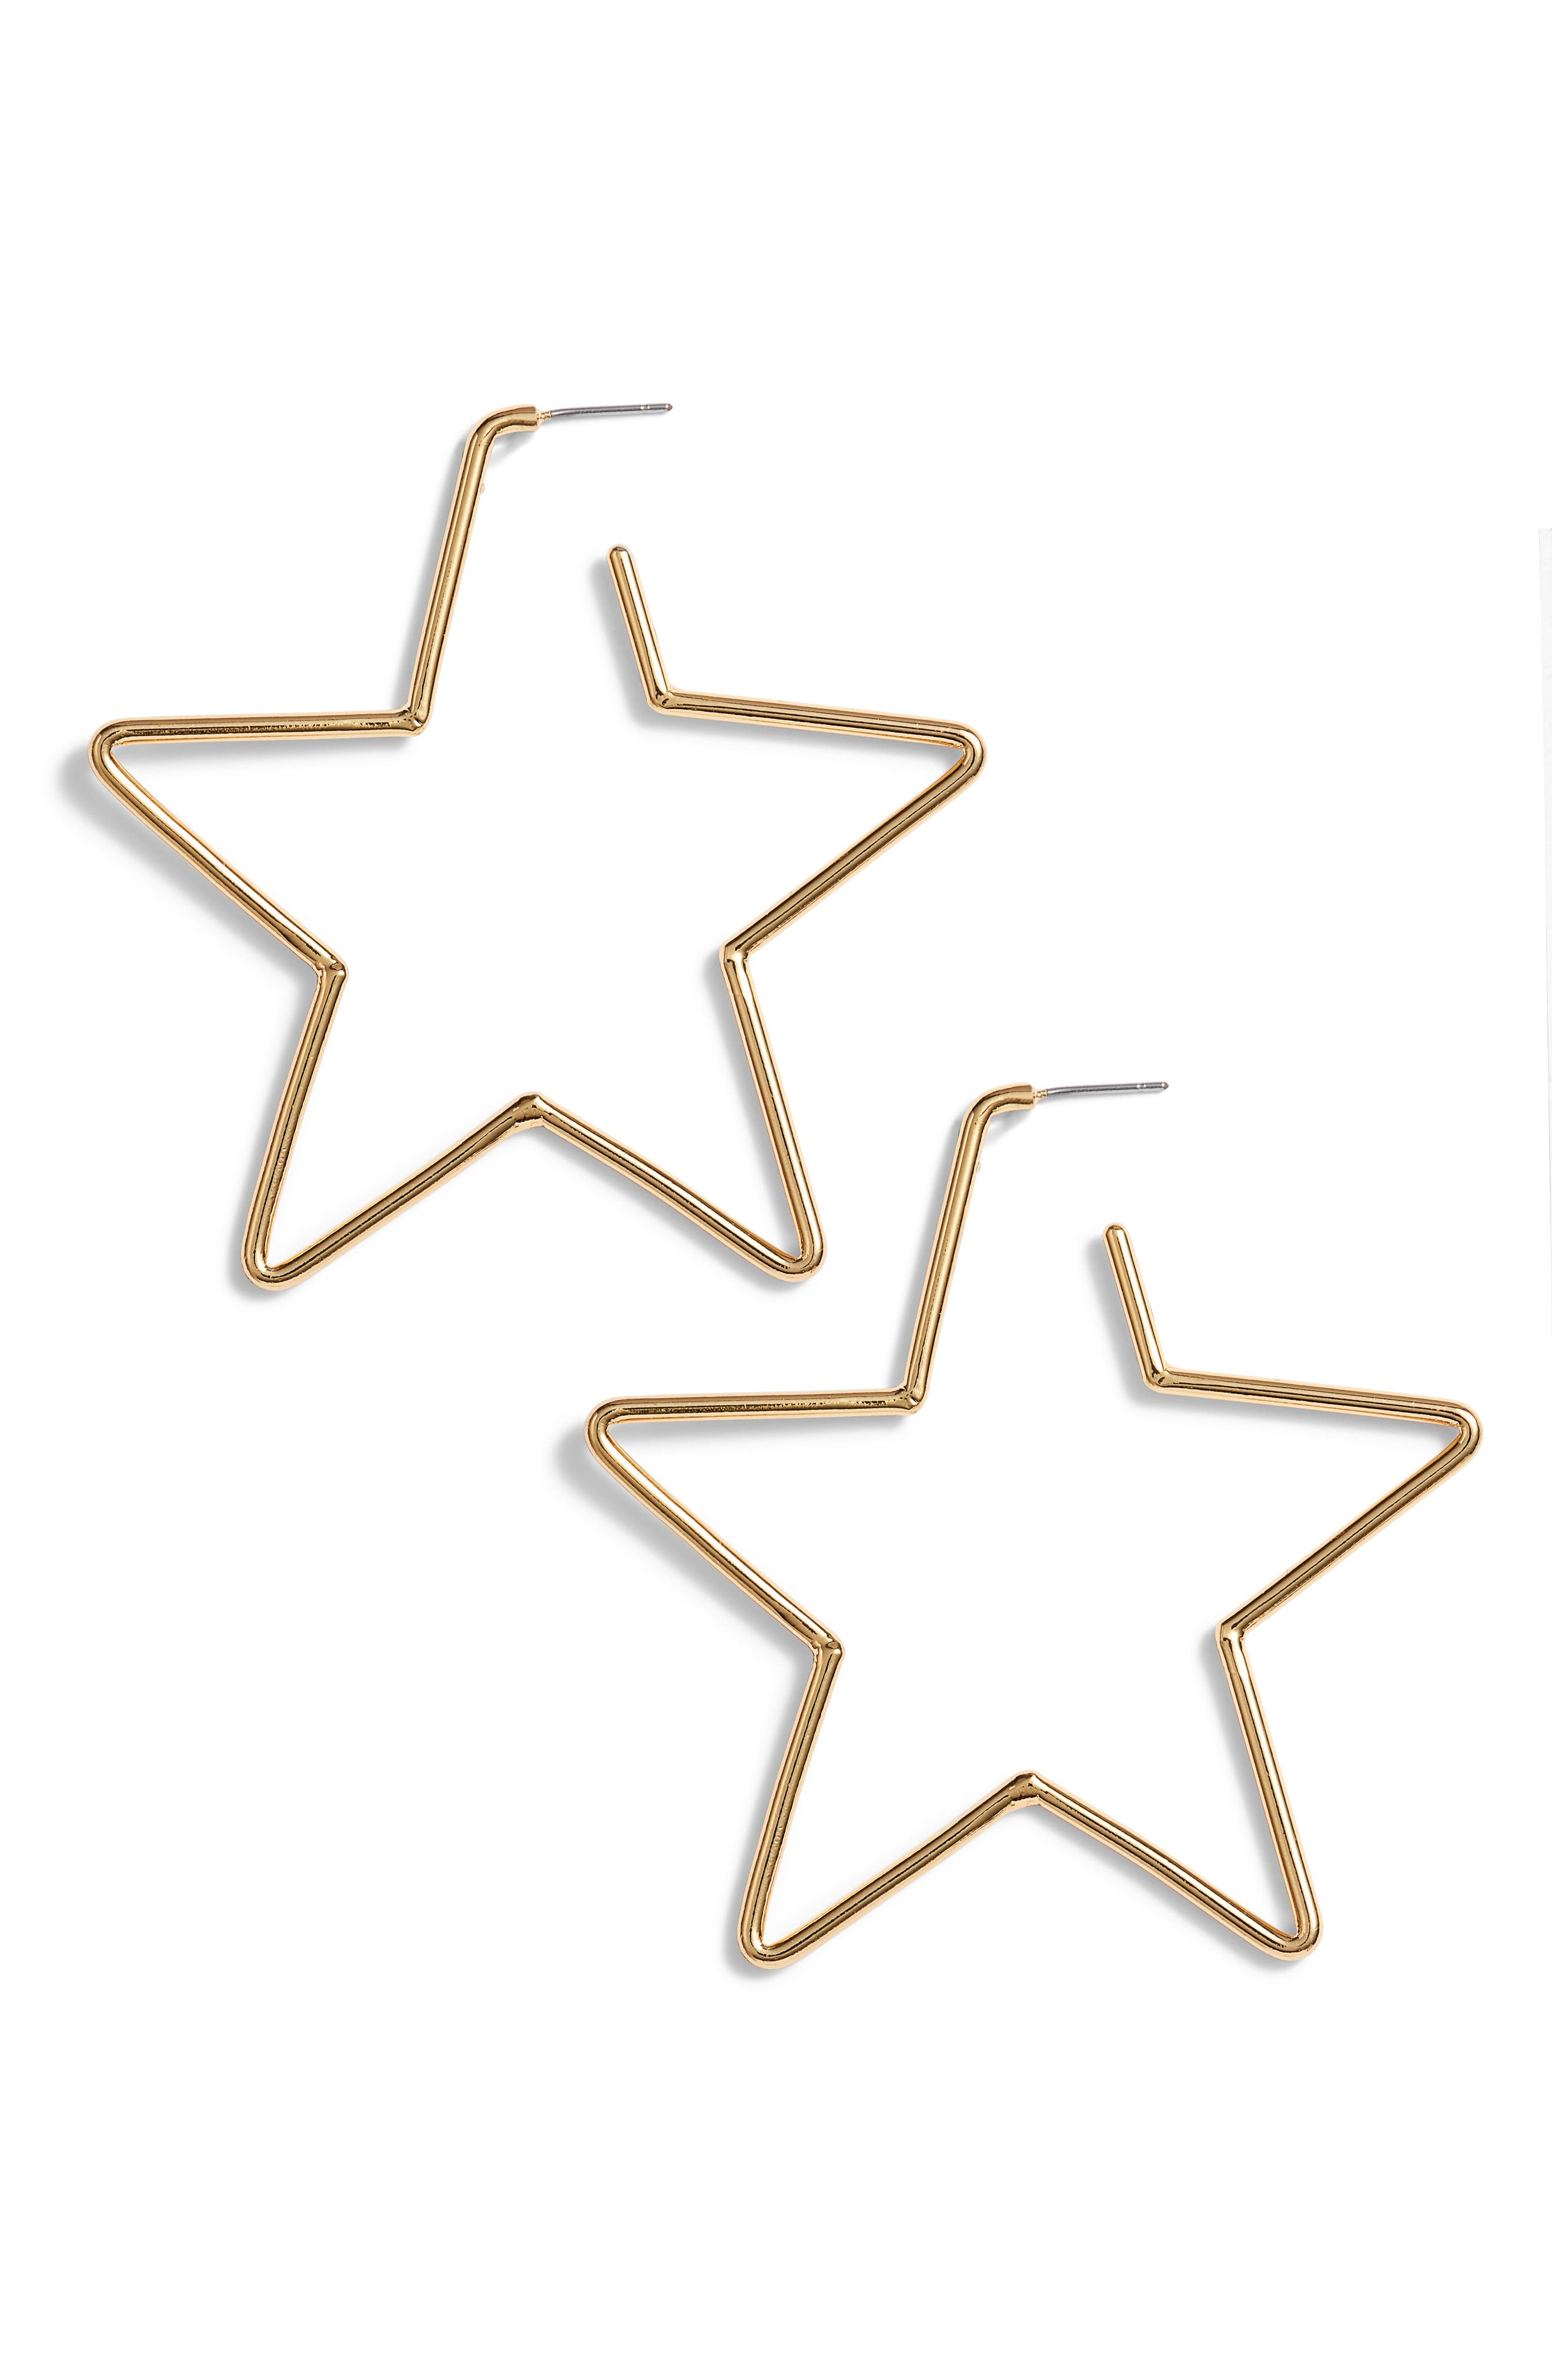 scrunched scallops star large hoop earrings,                         Main,                         color, Gold